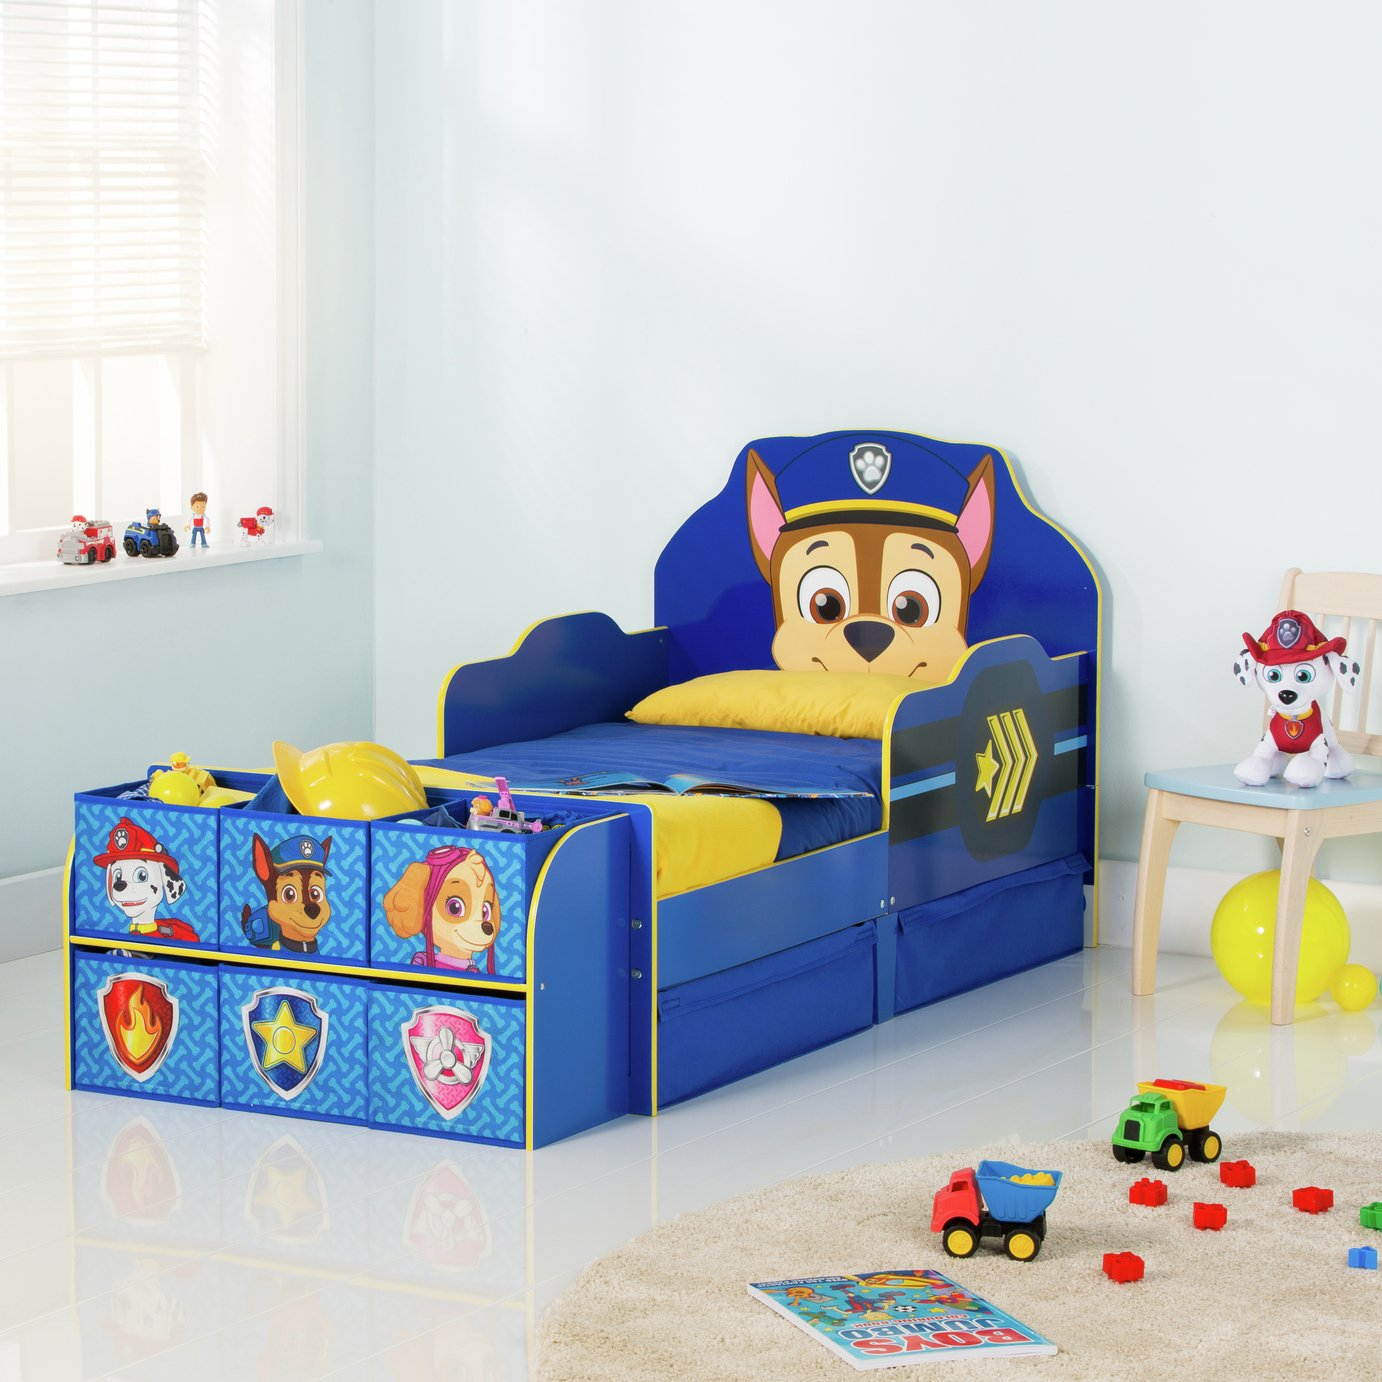 Paw Patrol Cube Toddler Bed Frame